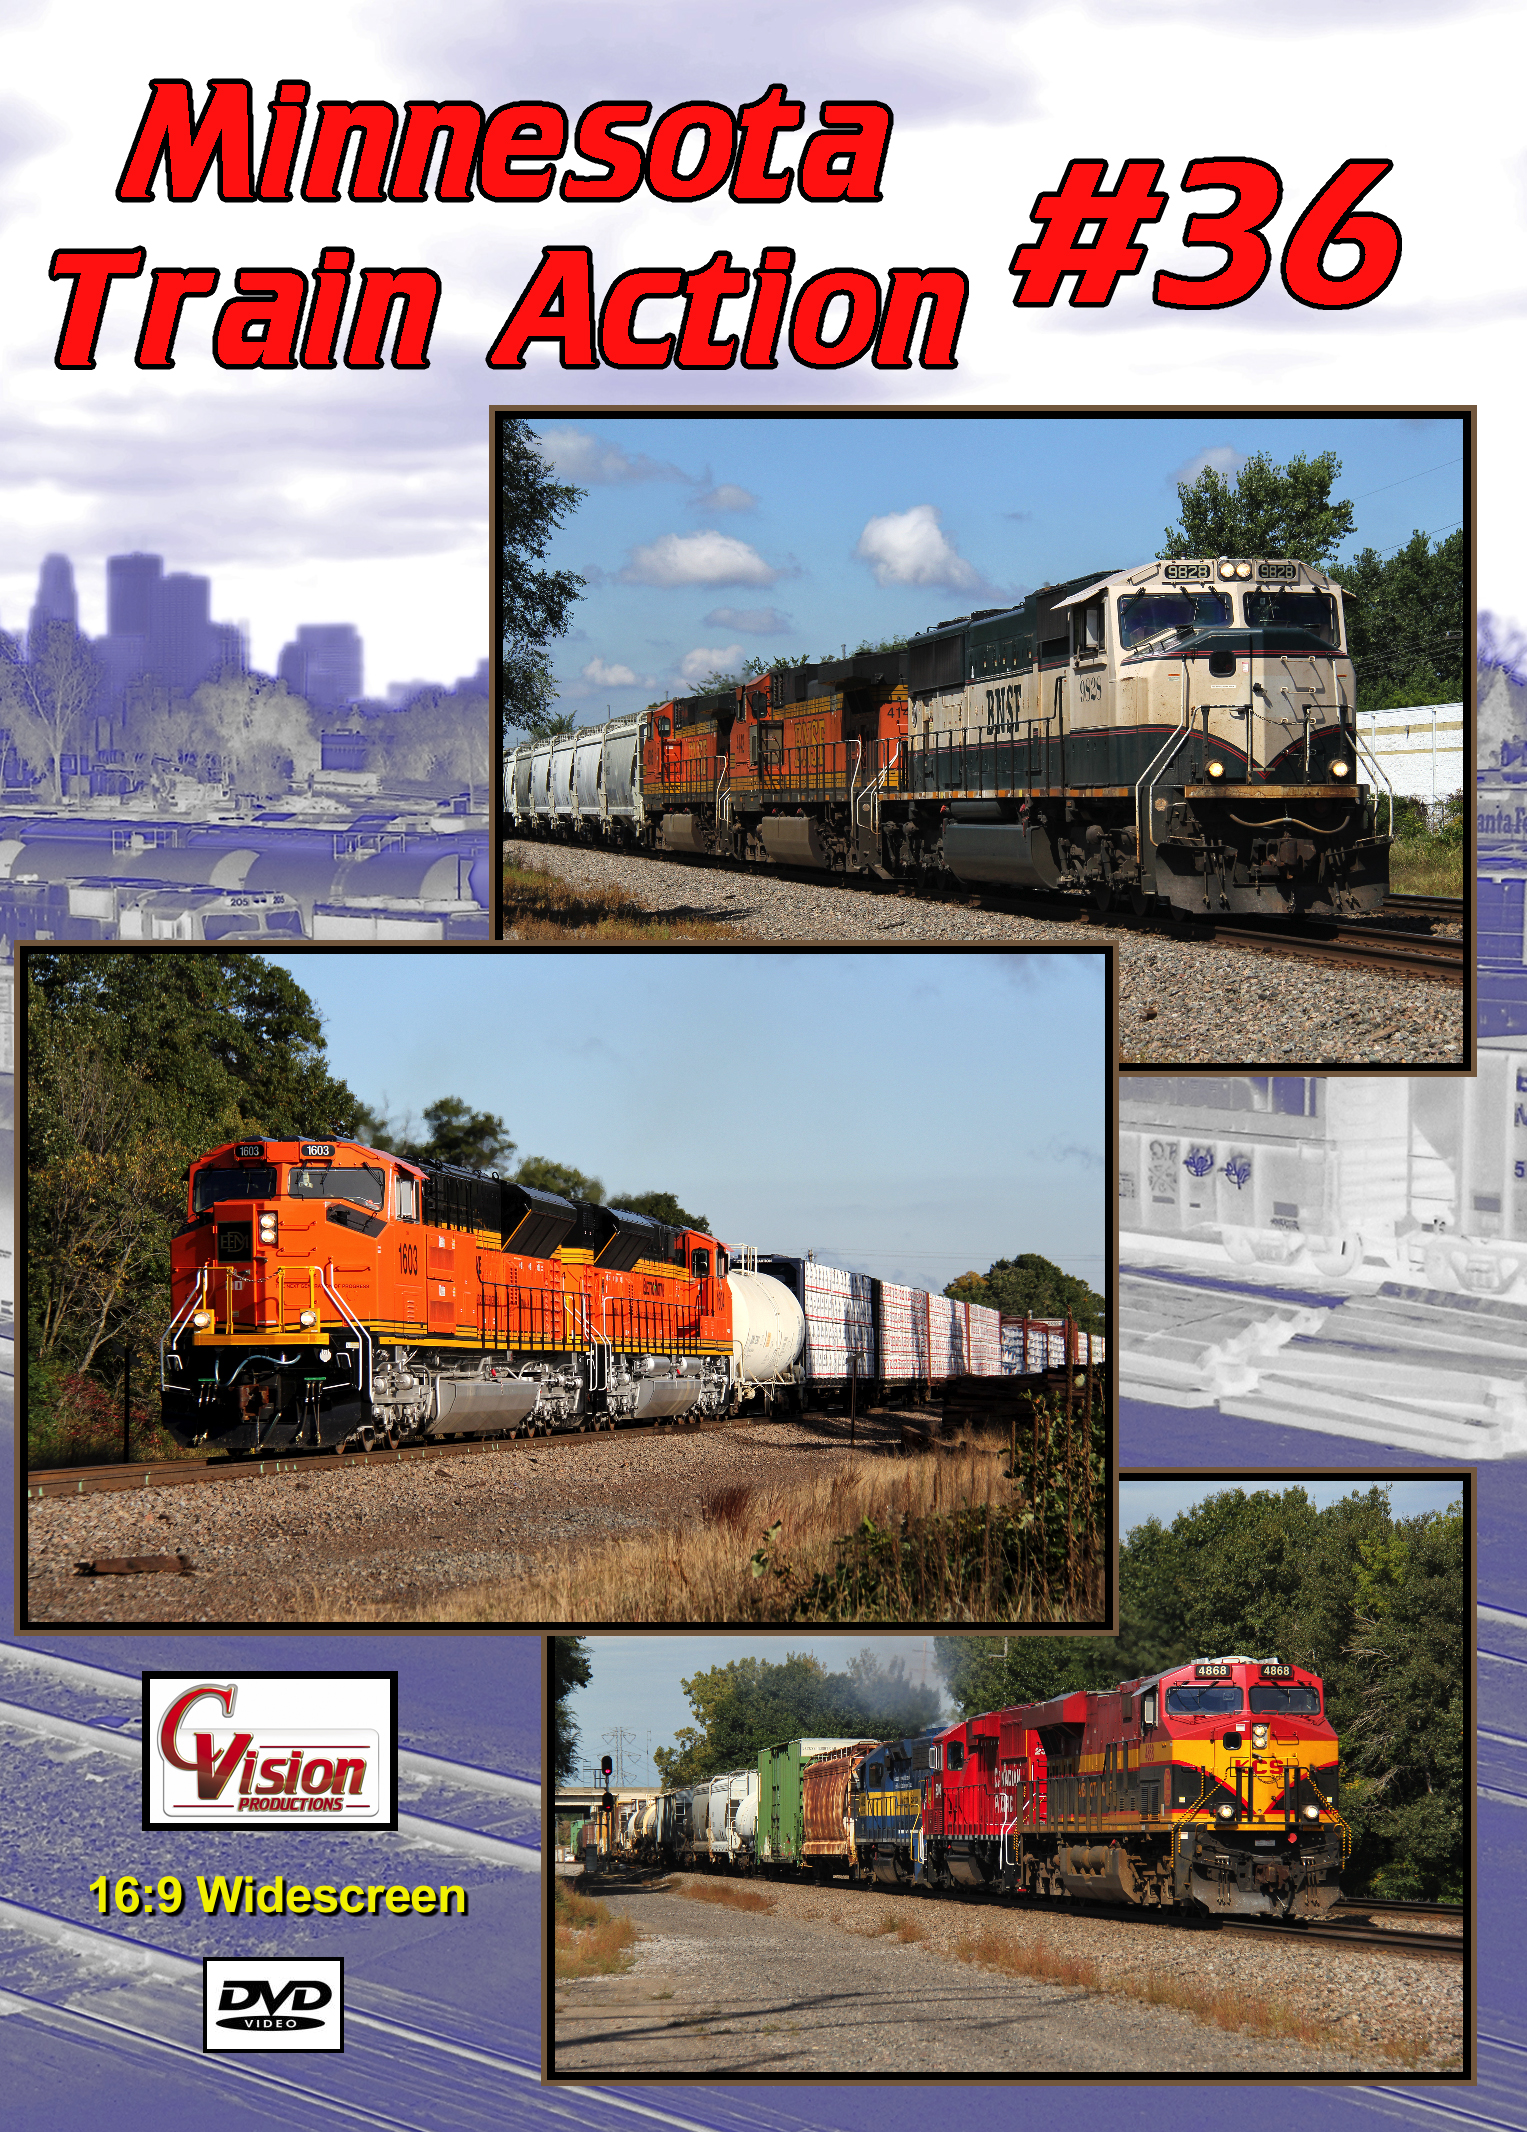 Minnesota Train Action Number 36 DVD C Vision Productions MTA36DVD